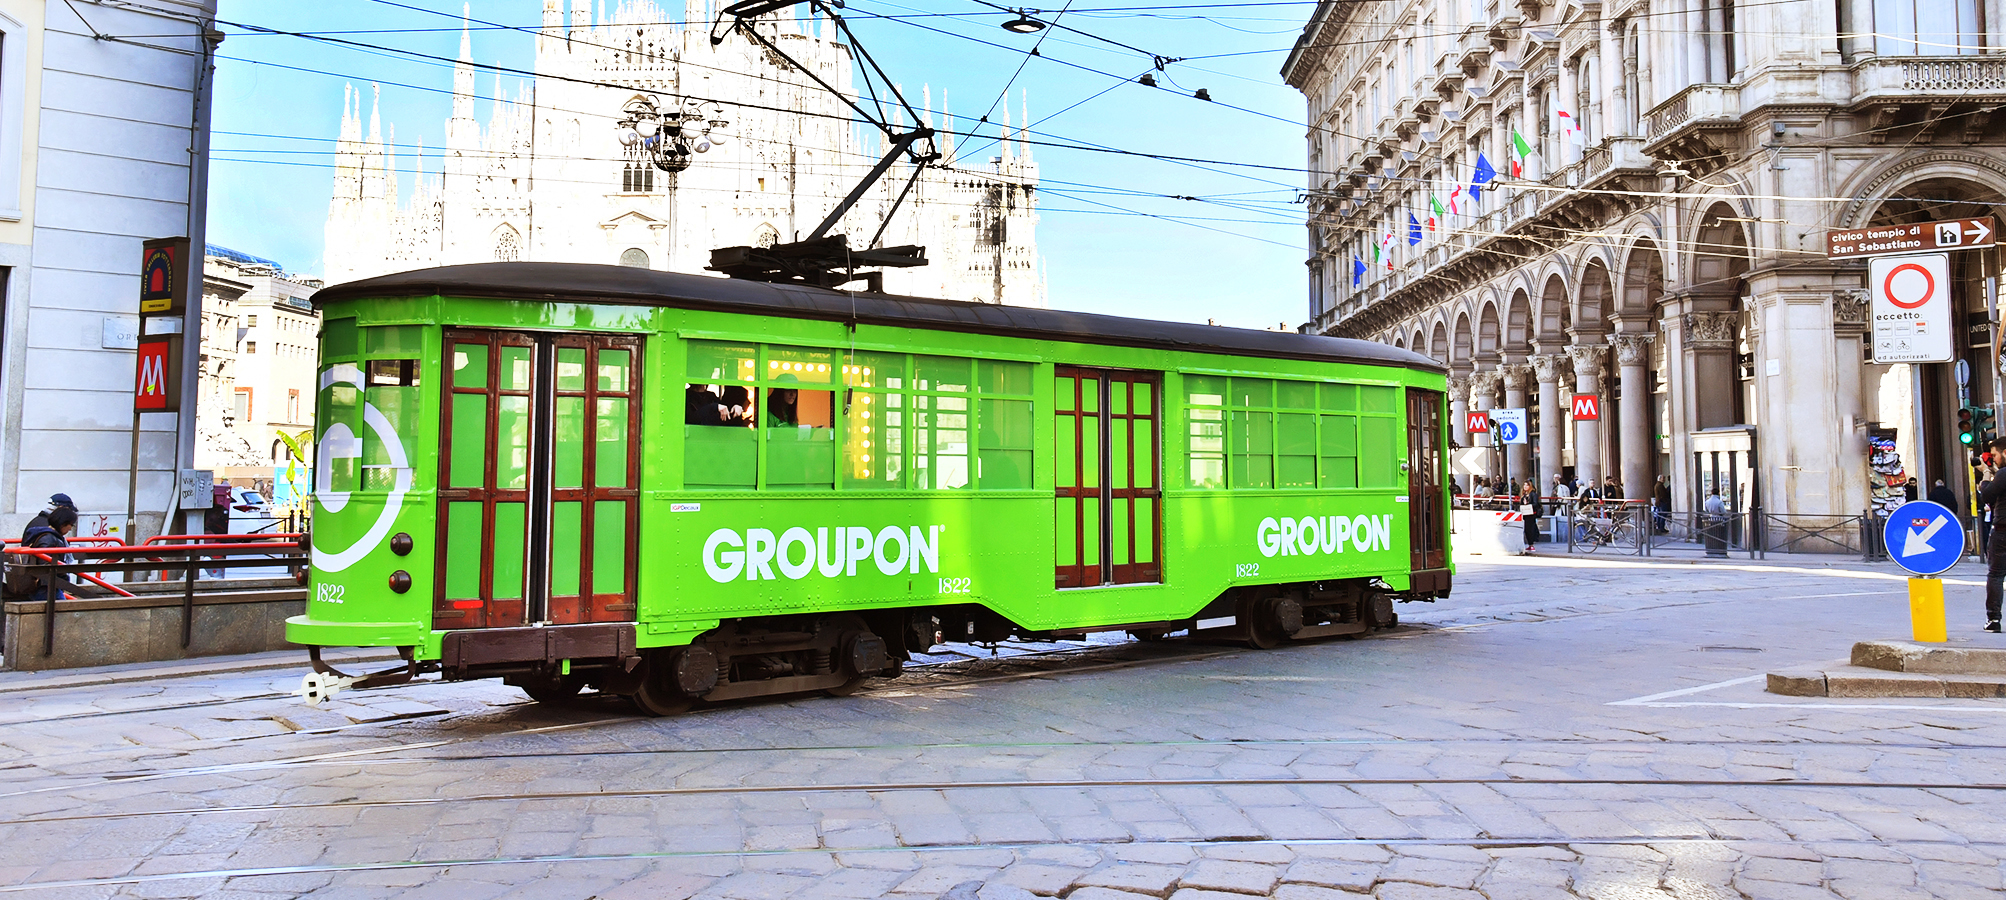 Tram speciale a Milano per Groupon